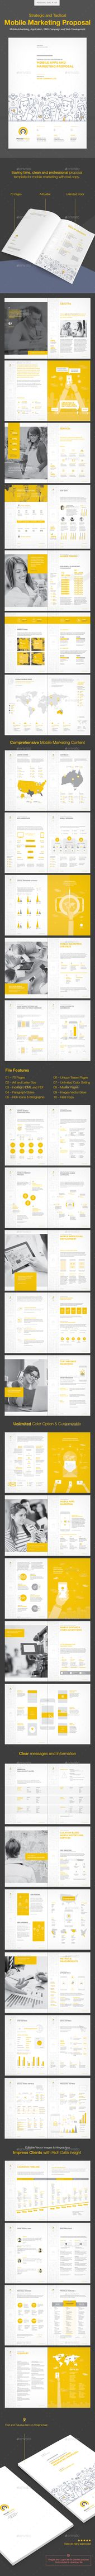 Clean Mobile Marketing Proposal Marketing proposal, Proposal - marketing proposal templates